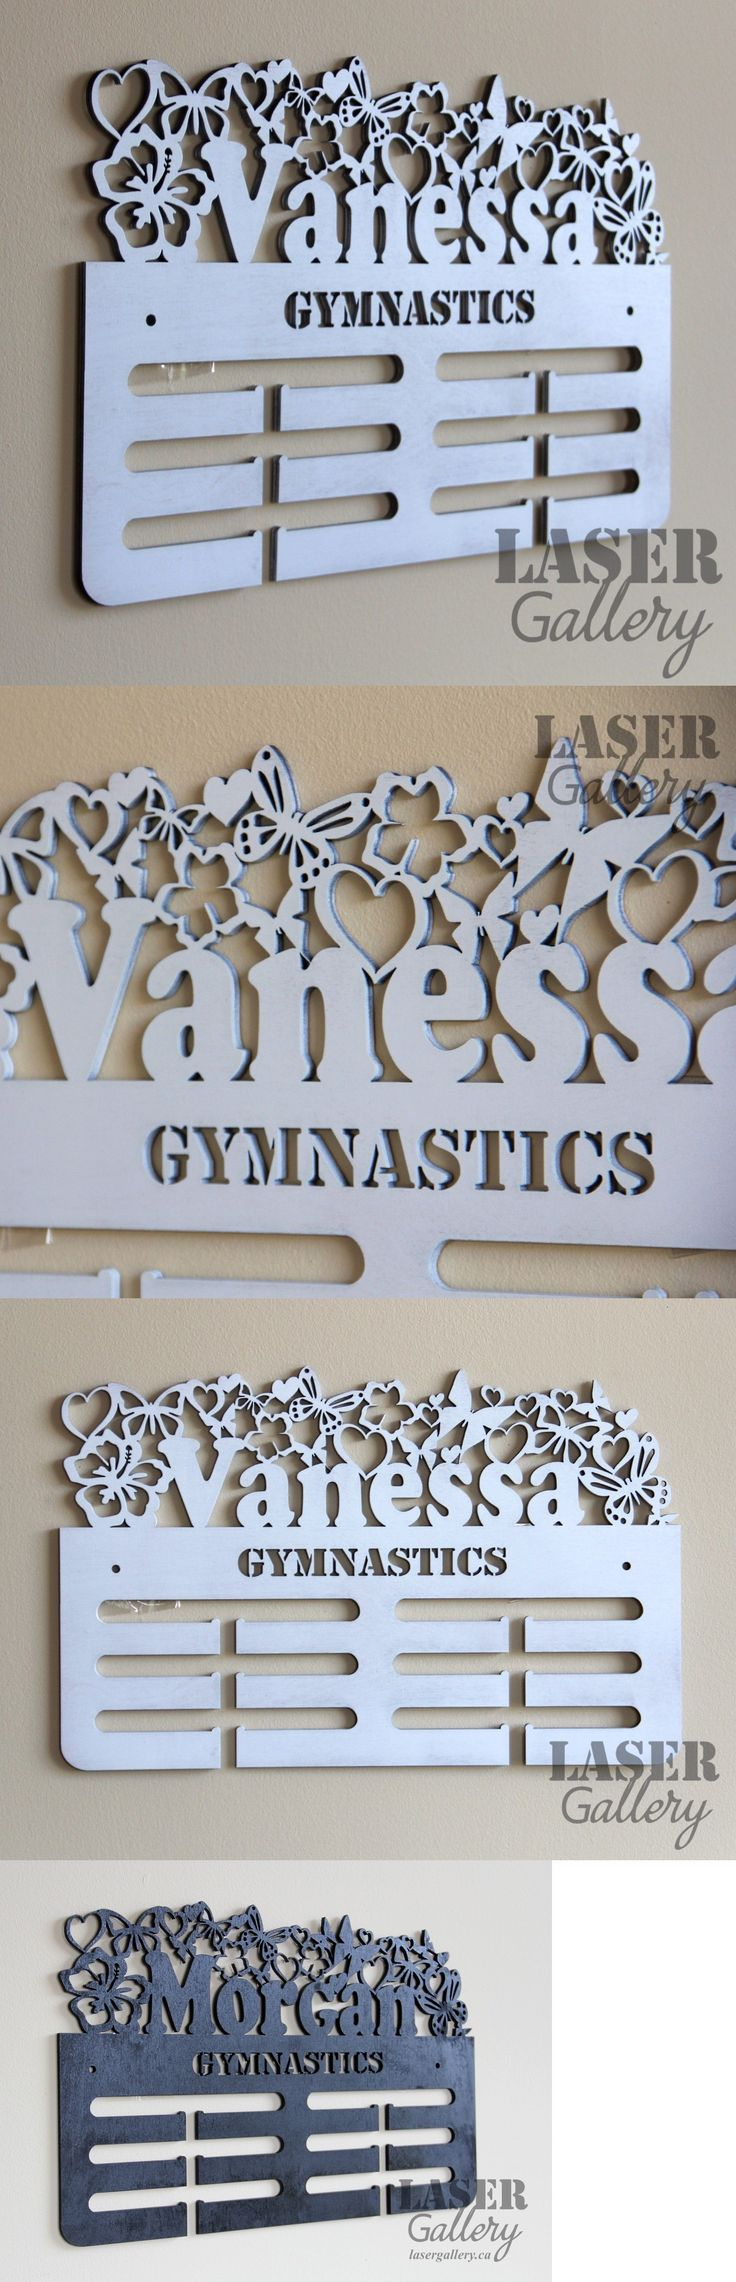 Novelties and Gifts 159172: Custom Gymnastics Butterfly Medal Hanger 16X9 - Laser Cut Medal Display Rack BUY IT NOW ONLY: $55.0